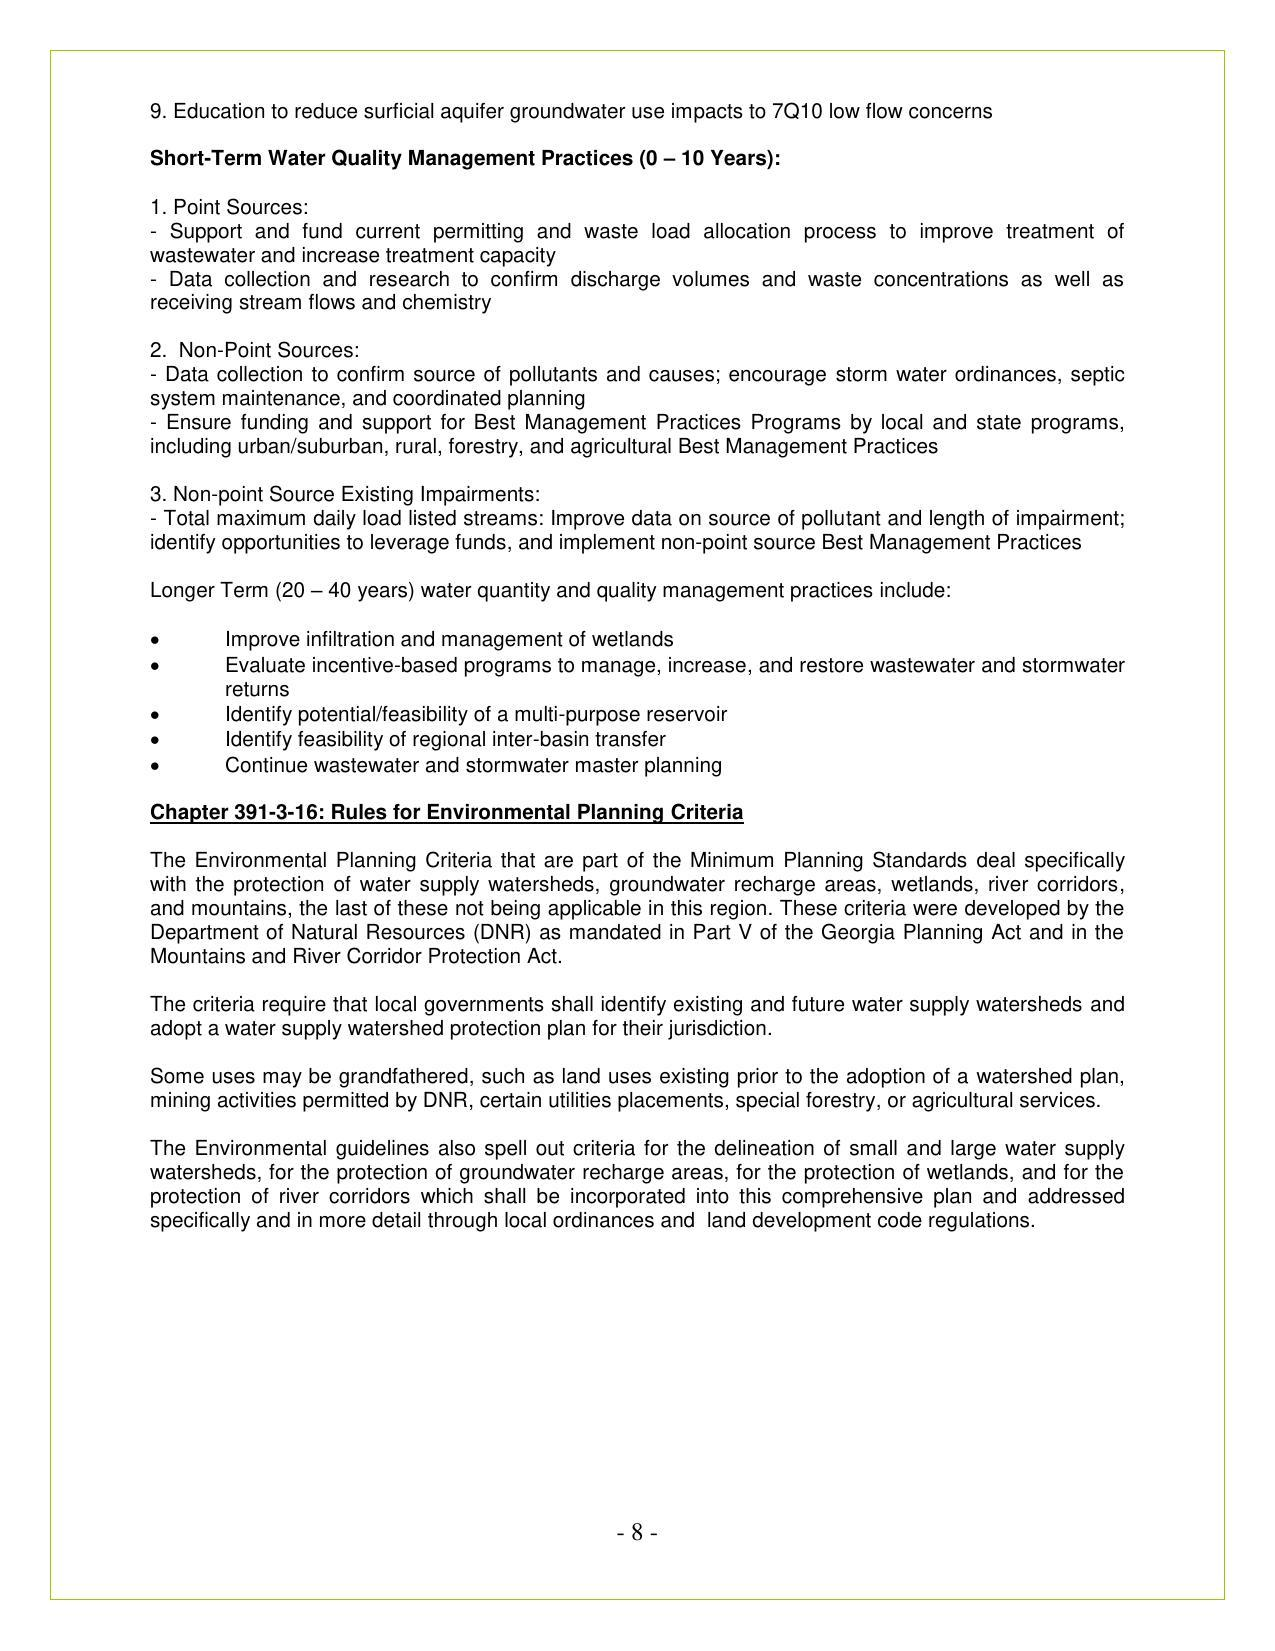 [Rules for Environmental Planning Criteria]